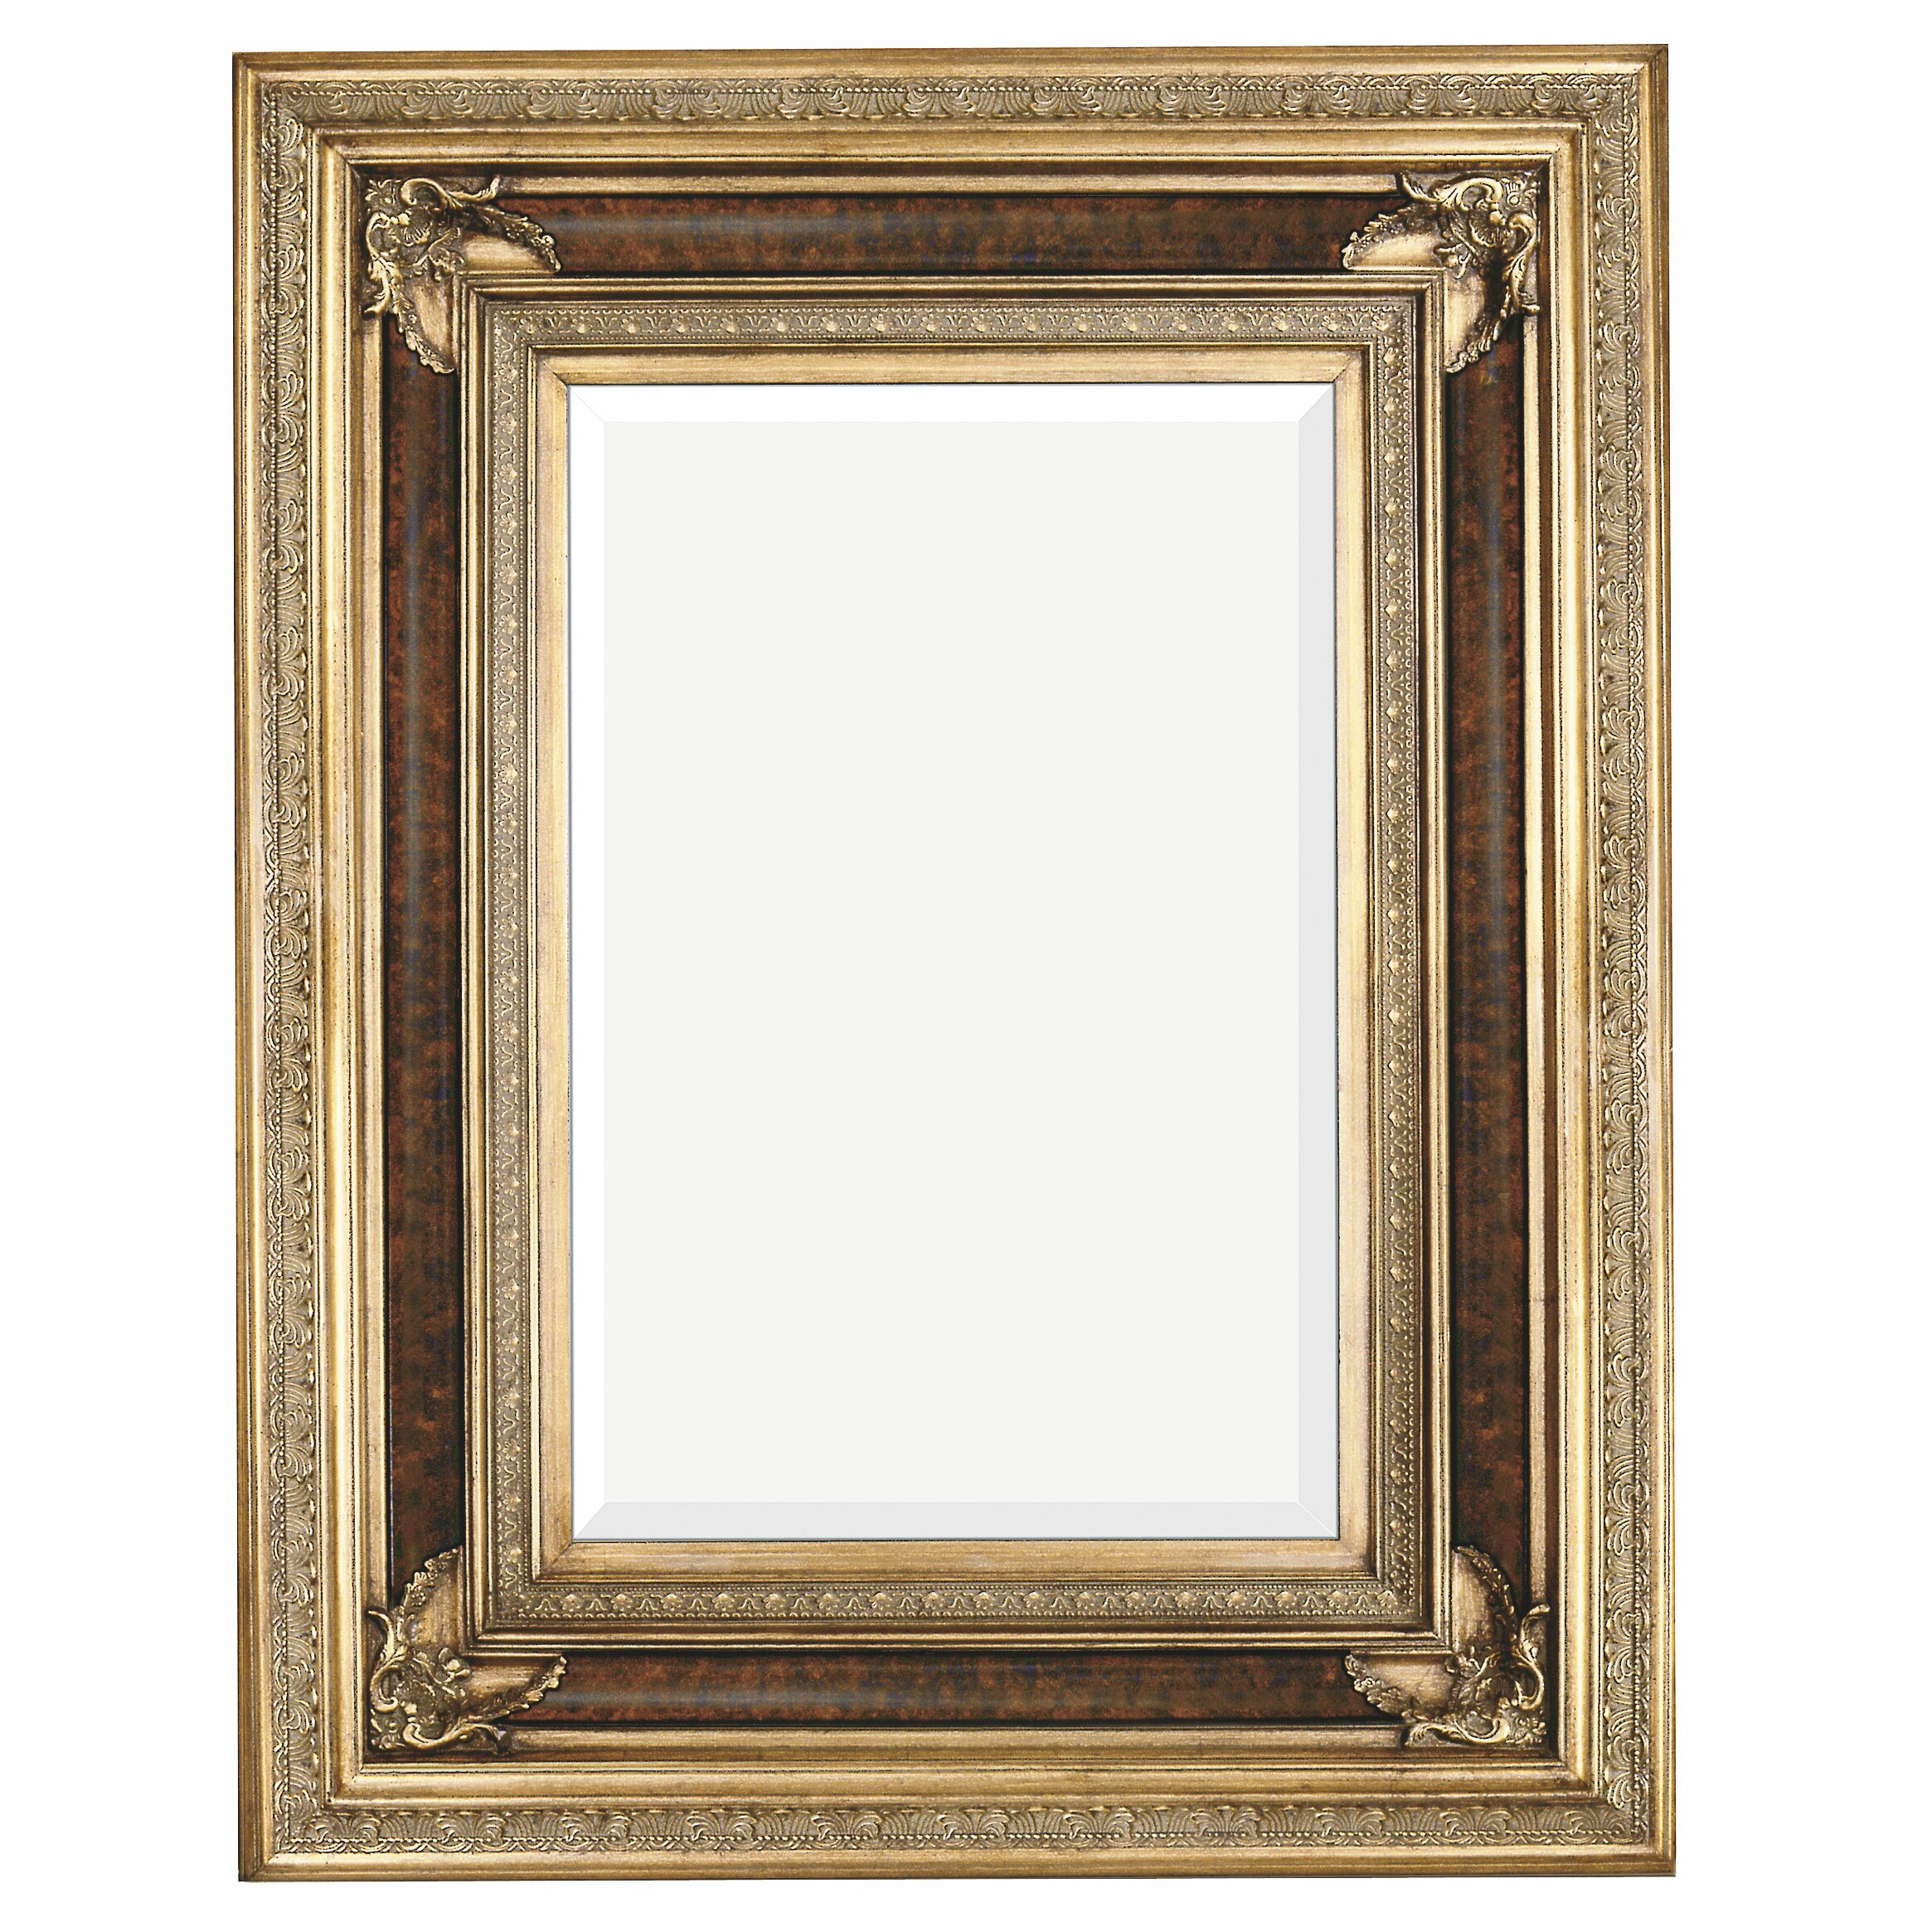 majestic mirror rectangular antique wood framed traditional glass wall mirror